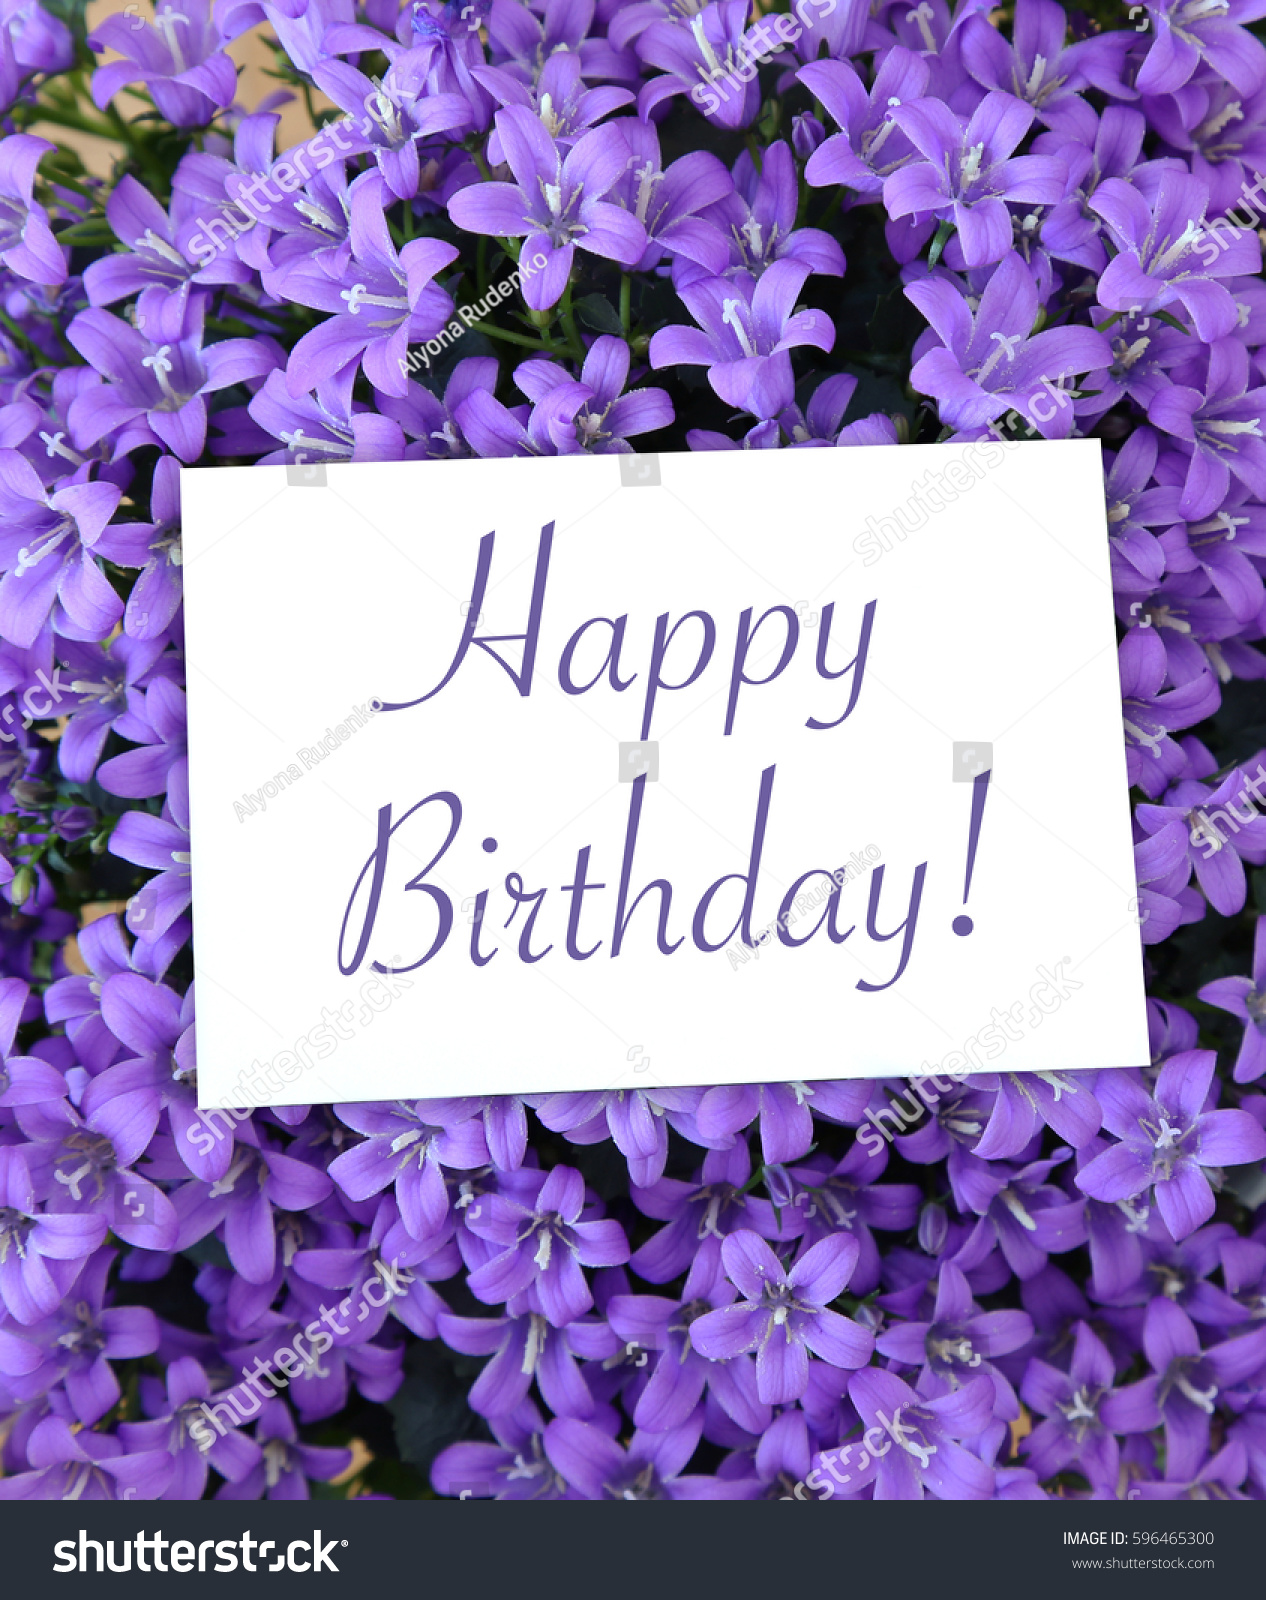 Happy birthday greeting card on background stock photo edit now happy birthday greeting card on the background of the small purple flowers of campanula izmirmasajfo